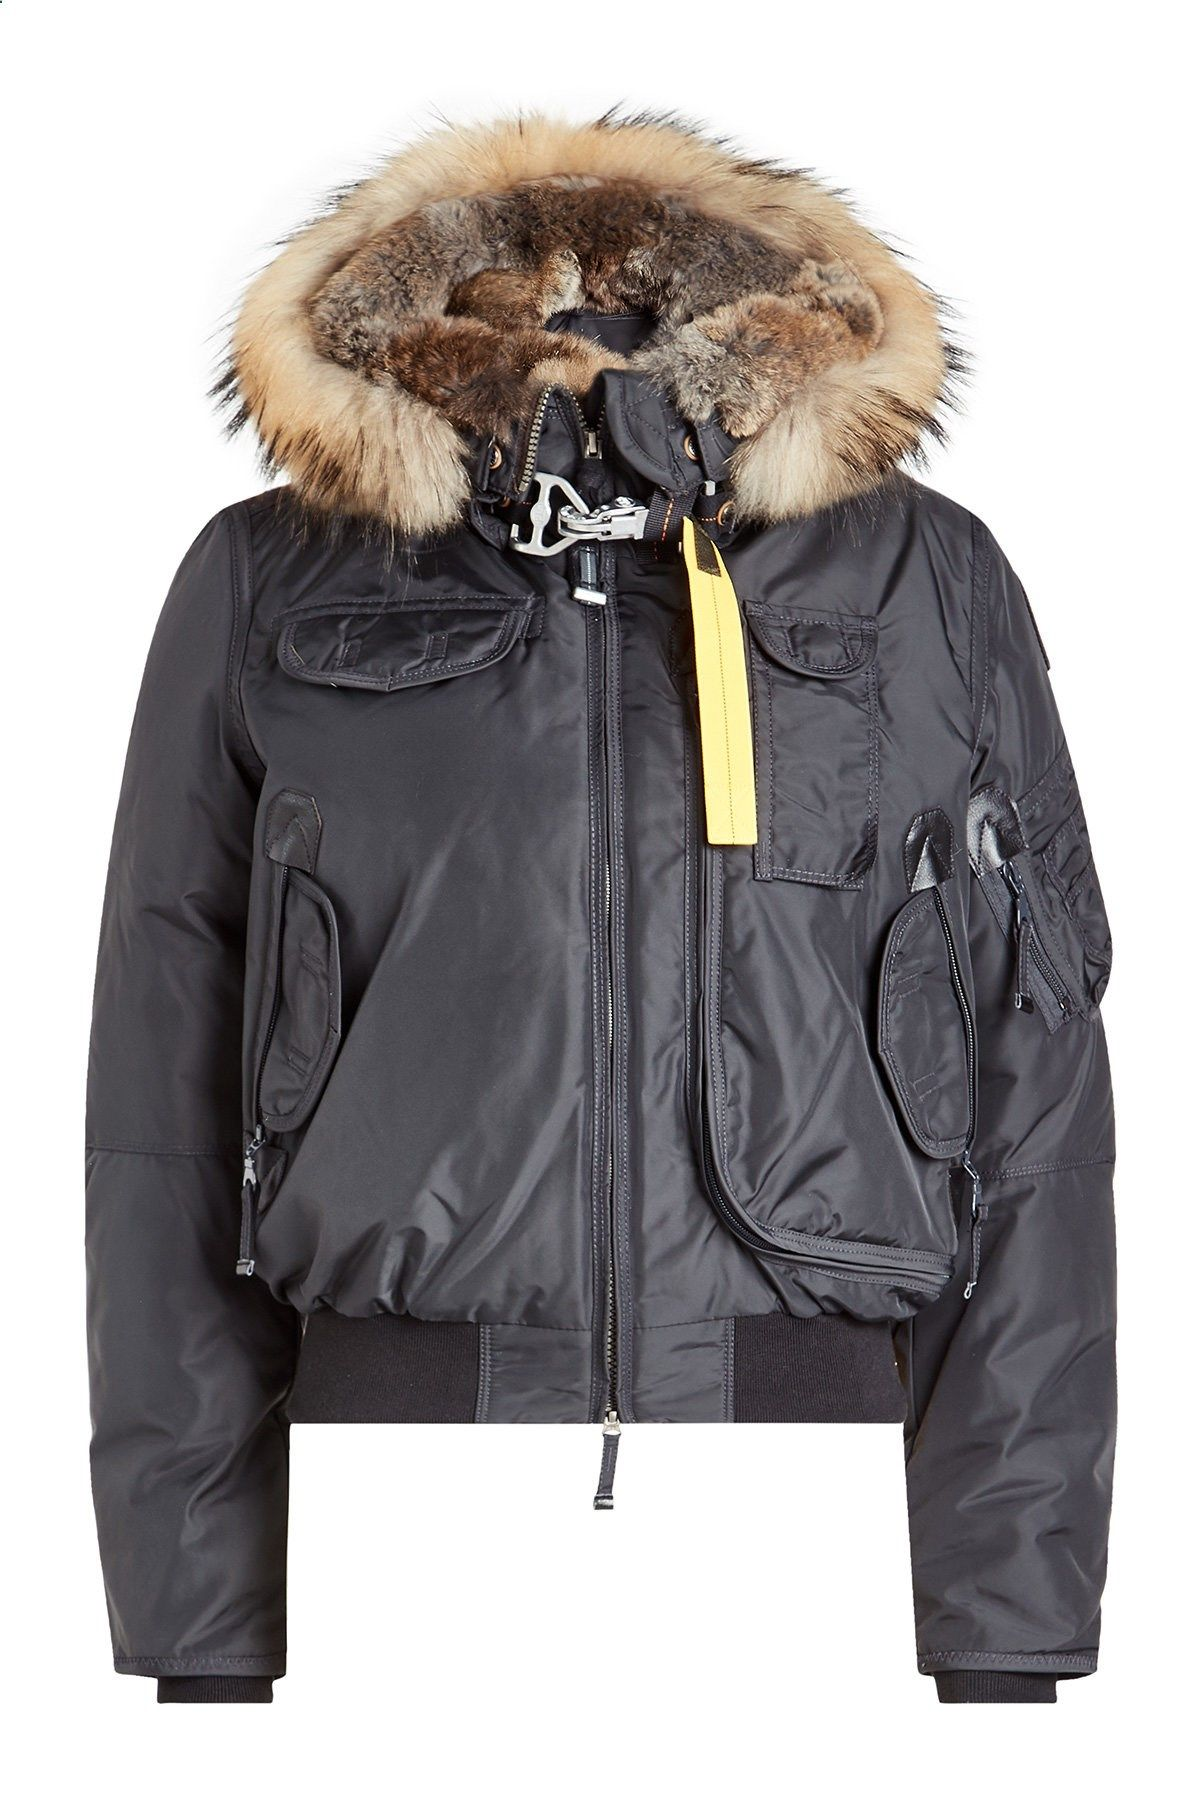 Gobi Down Bomber Jacket with Fur Trimmed Hood - Parajumpers